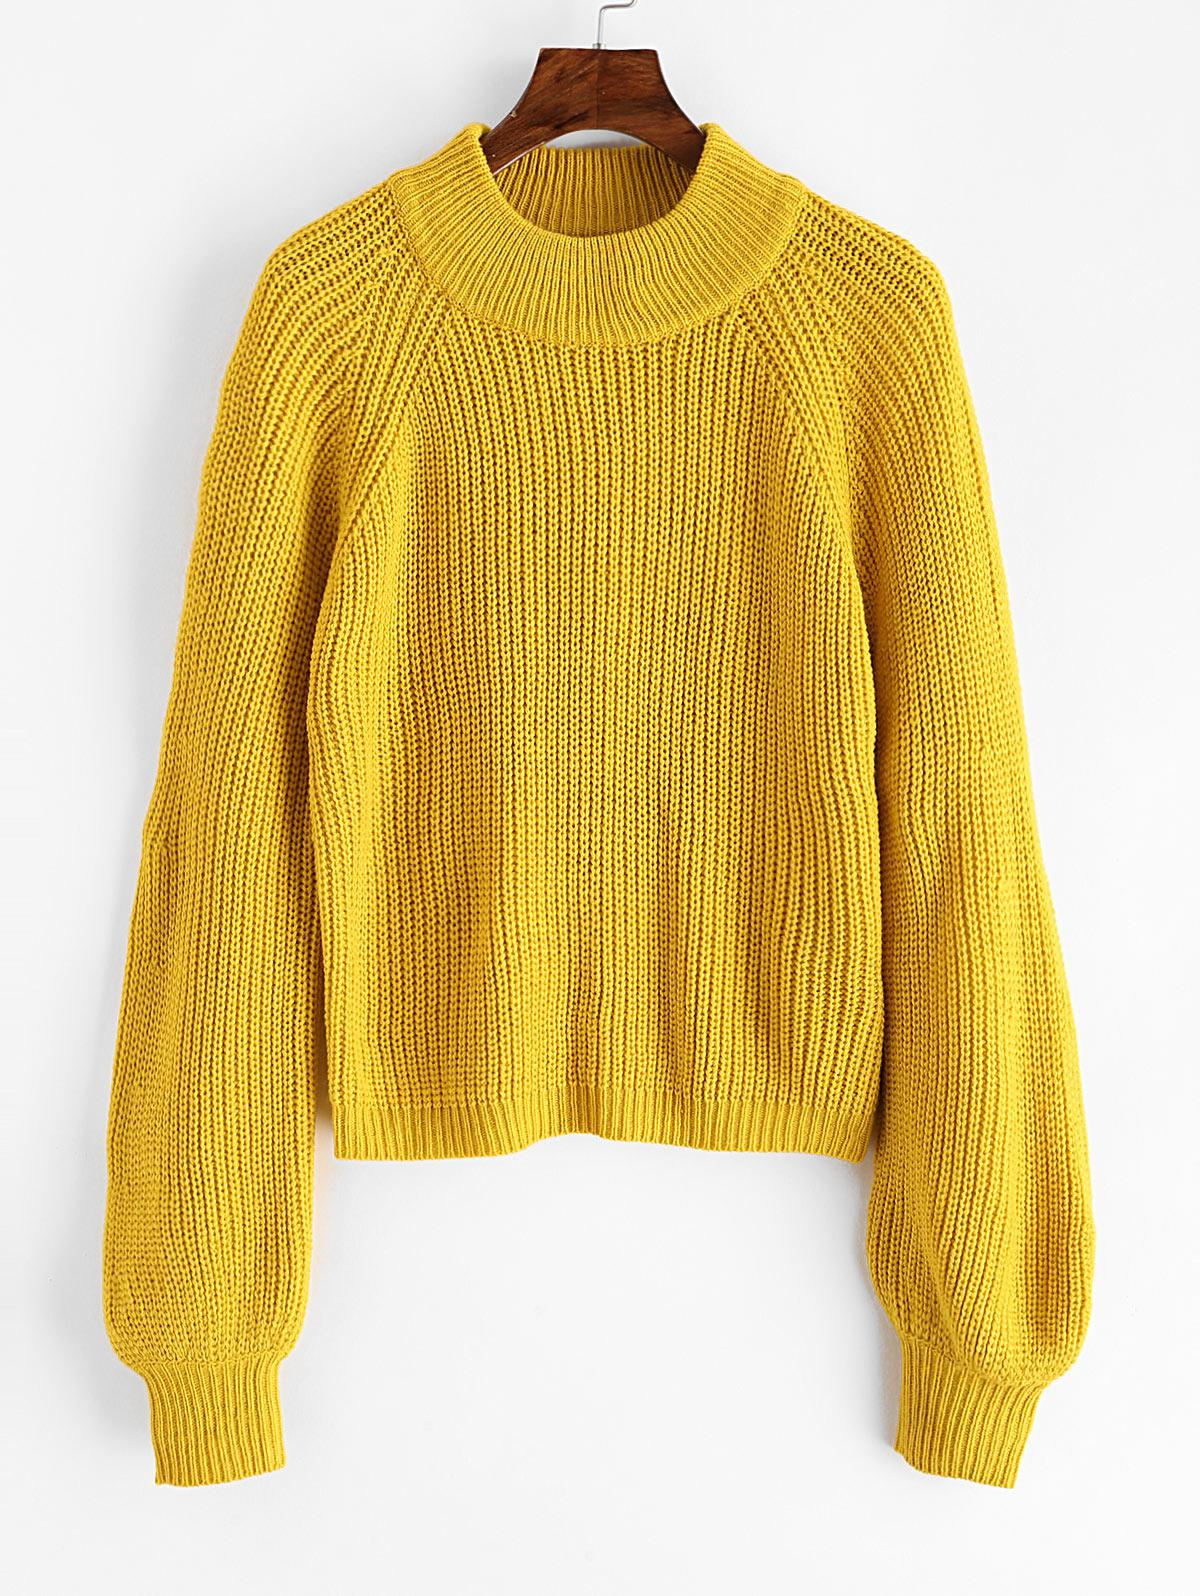 ZAFUL Plain Mock Neck Raglan Sleeve Jumper Sweater